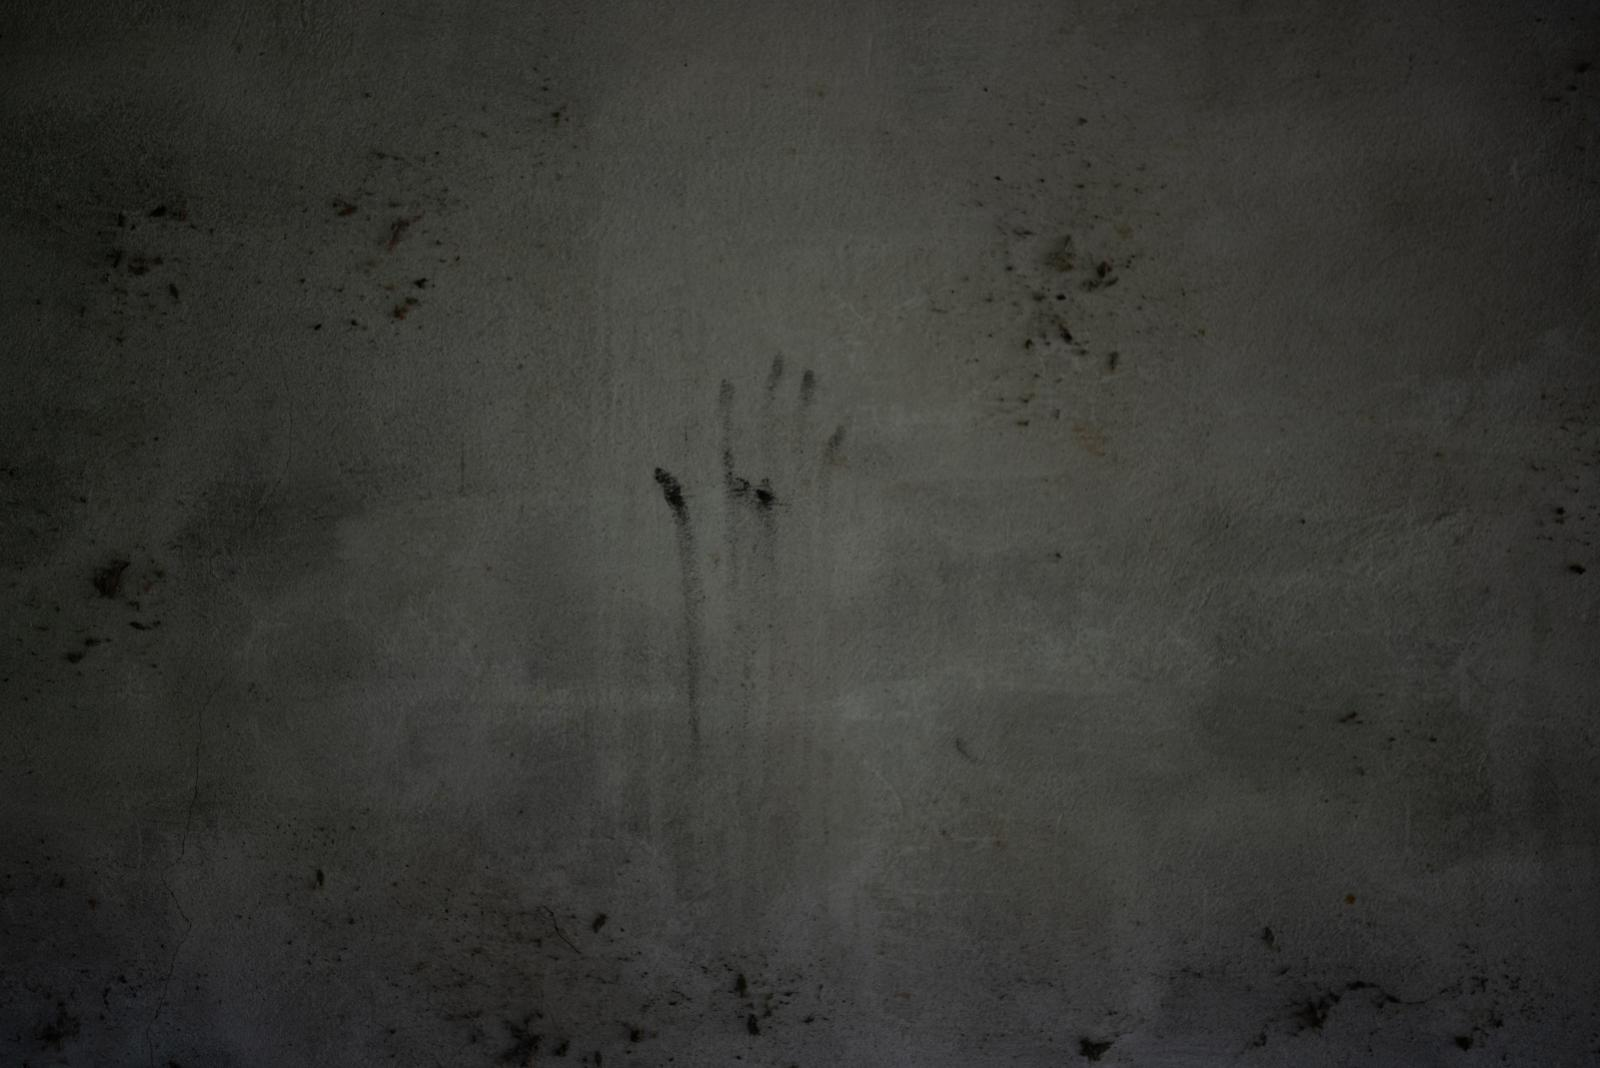 "The handprint made of ashes inside the house located in the ranch ""La Gallera"" where human remains have been located during the fifth National Missing Persons Search Brigade in Tihuatlán, Veracruz, Mexico, on February 20, 2020. Victoria Razo for NPR"